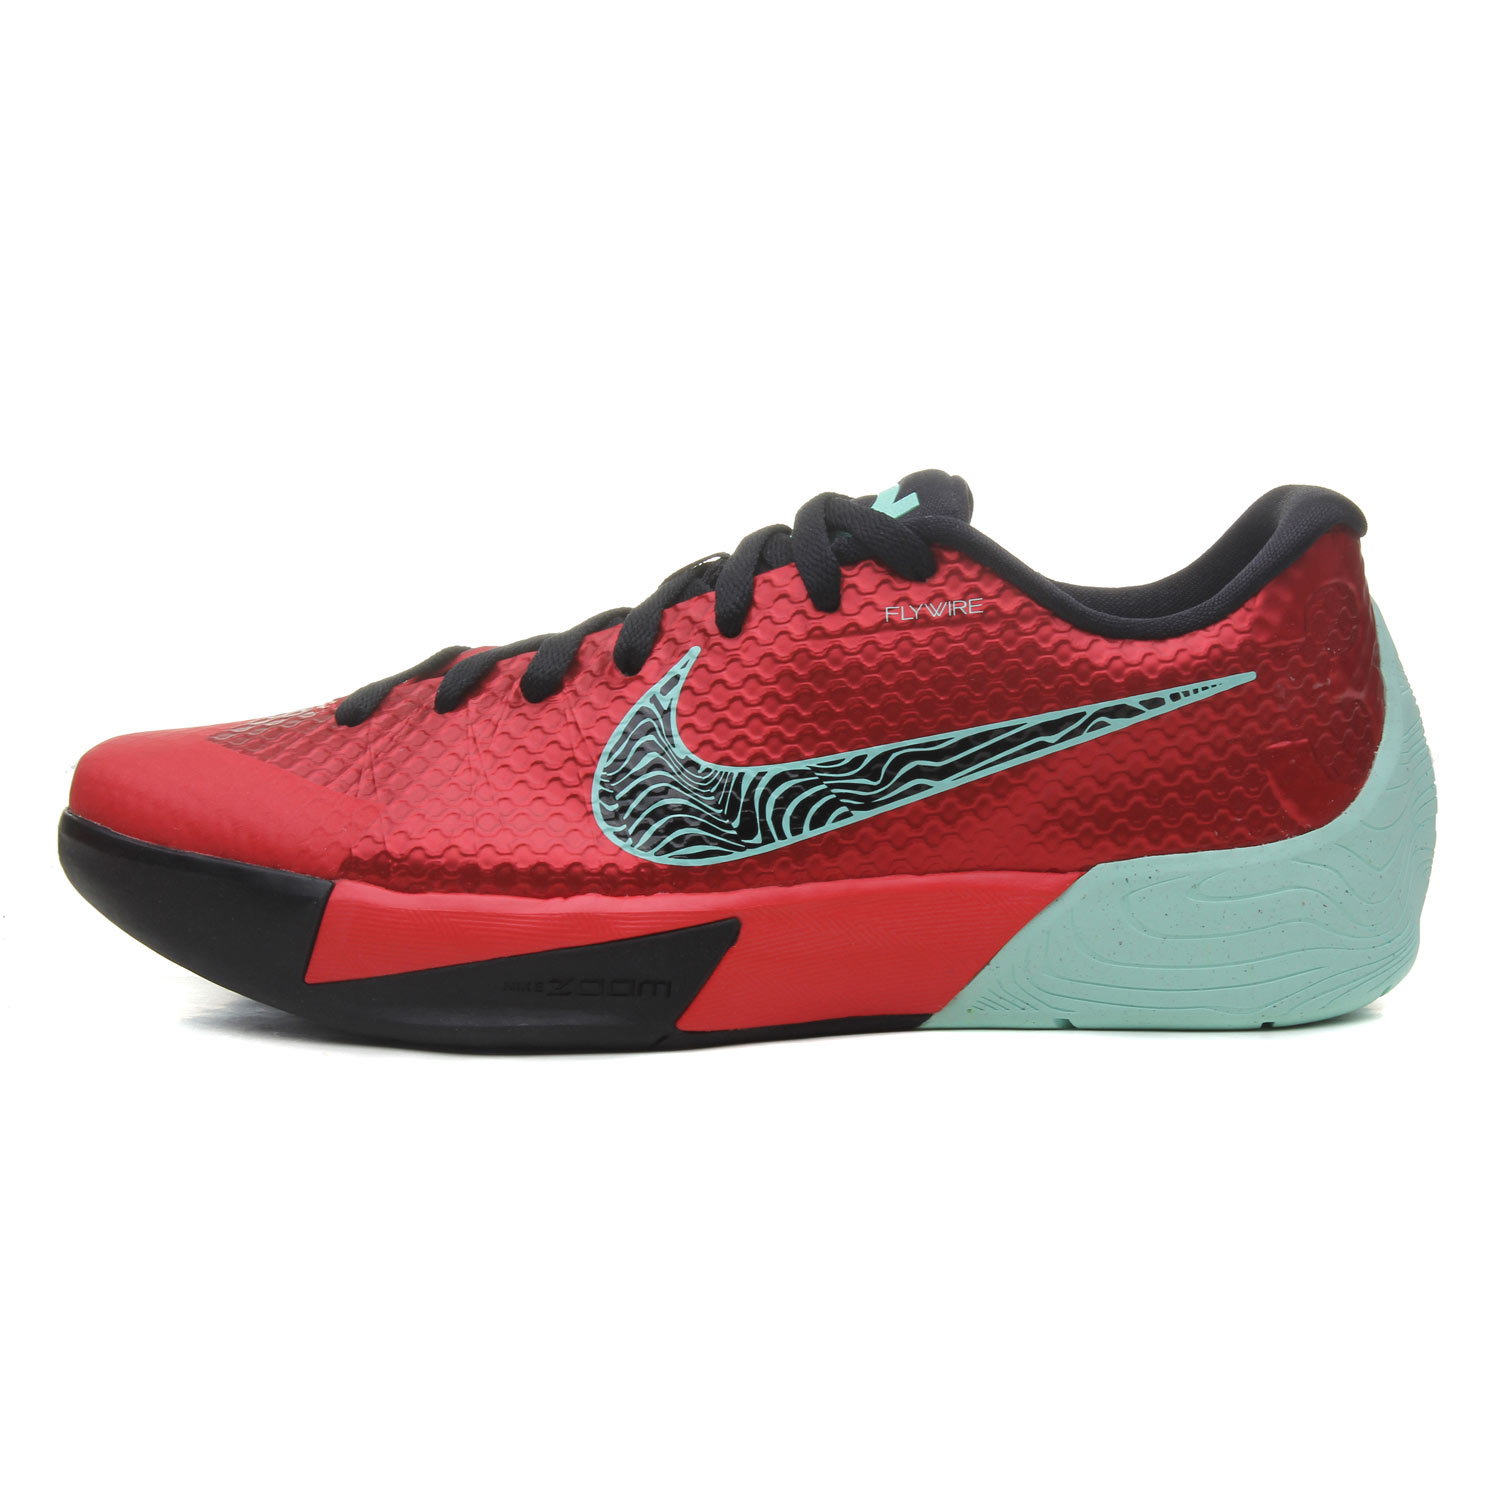 71dac4364309 Get Quotations · Nikenike nike kd trey5 durant kd basketball shoes men s  sports 679865-603-004